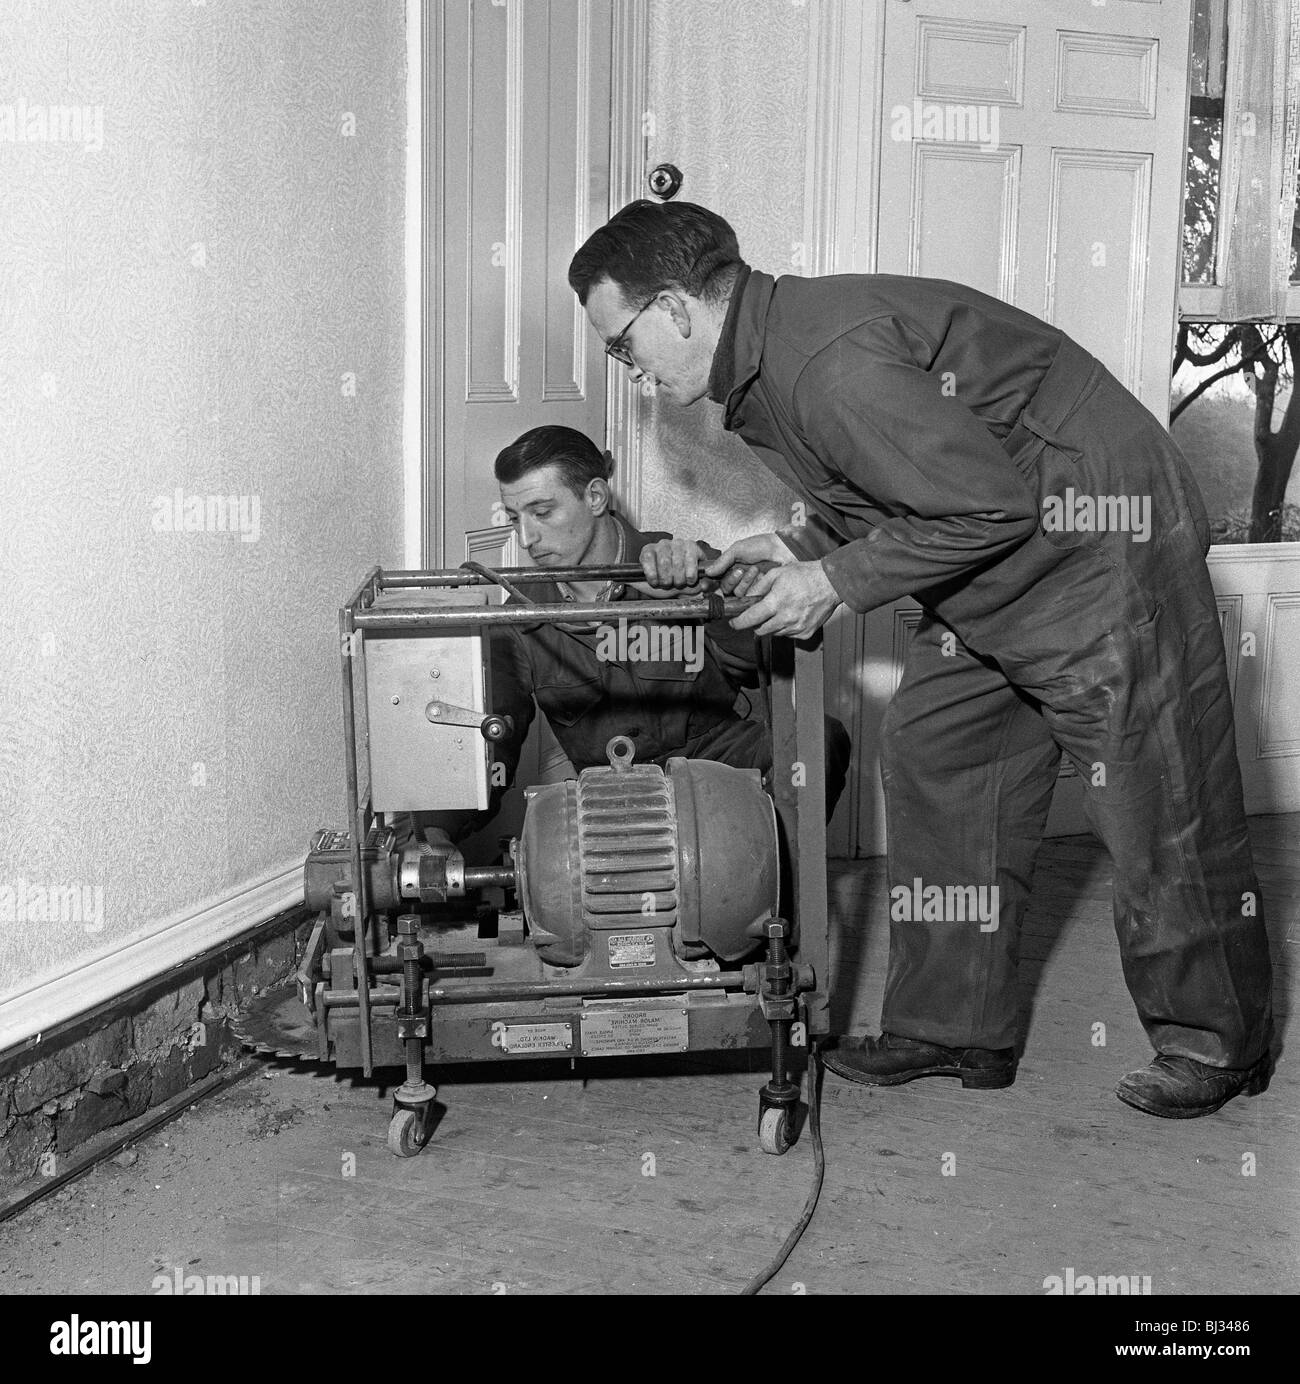 Damp proofing, Goldthorpe, South Yorkshire, 1957. Artist: Michael Walters - Stock Image